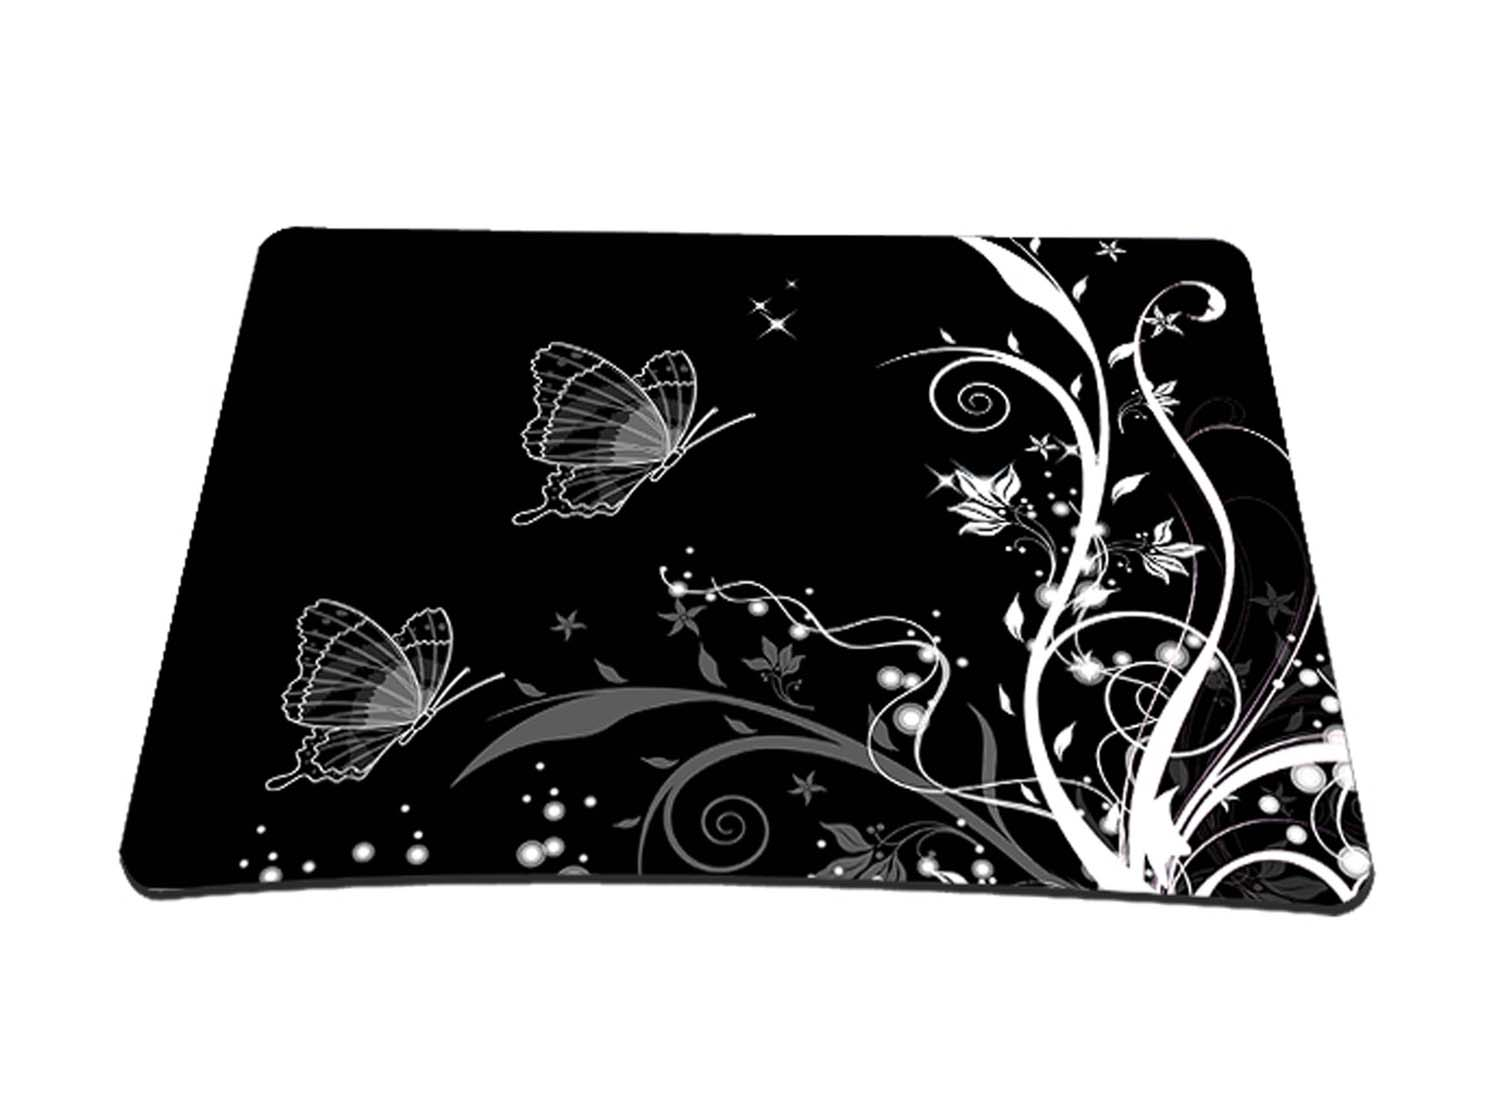 luxburg design mousepad mausunterlage mauspad mouse mat medium large xxl ebay. Black Bedroom Furniture Sets. Home Design Ideas